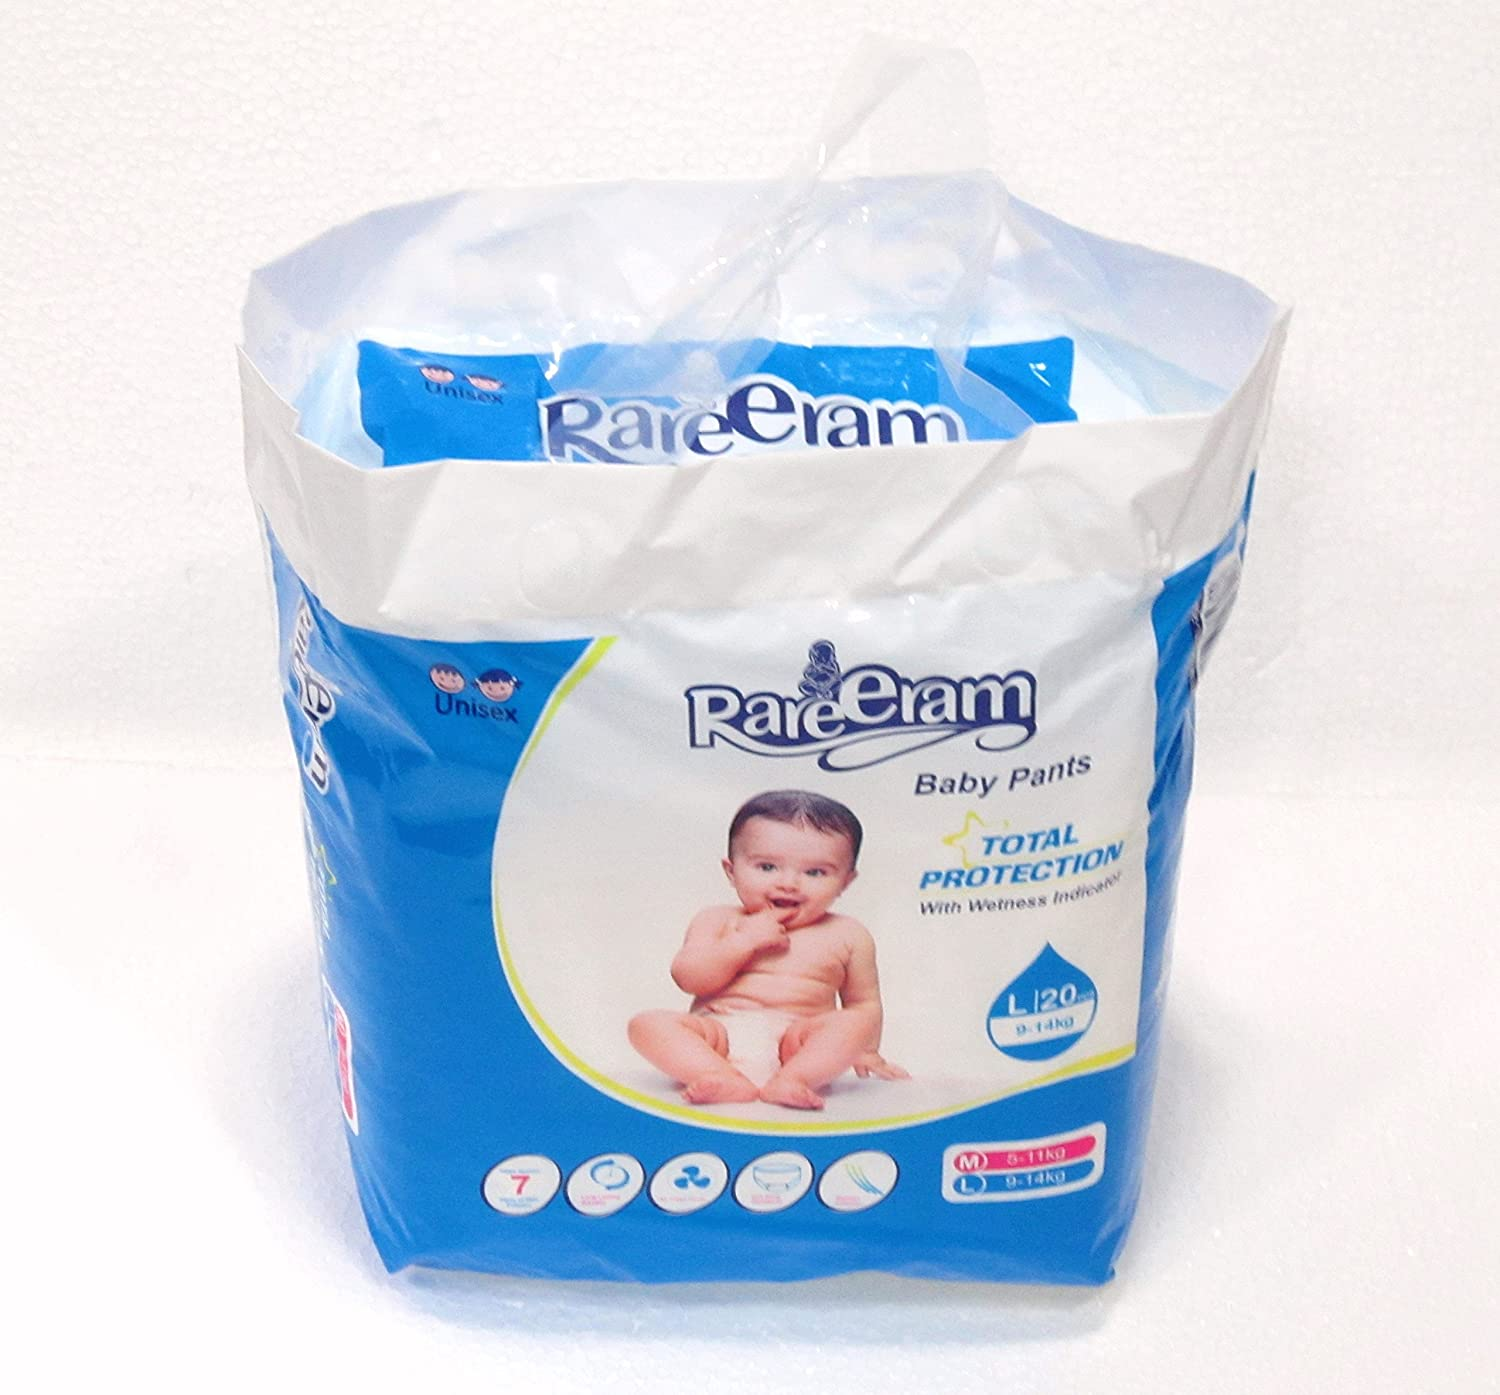 Buy Rareeram Diaper Pants With Wetness Indicator Pack Of 40 Mamypoko Diapers L20 Large L Online At Low Prices In India